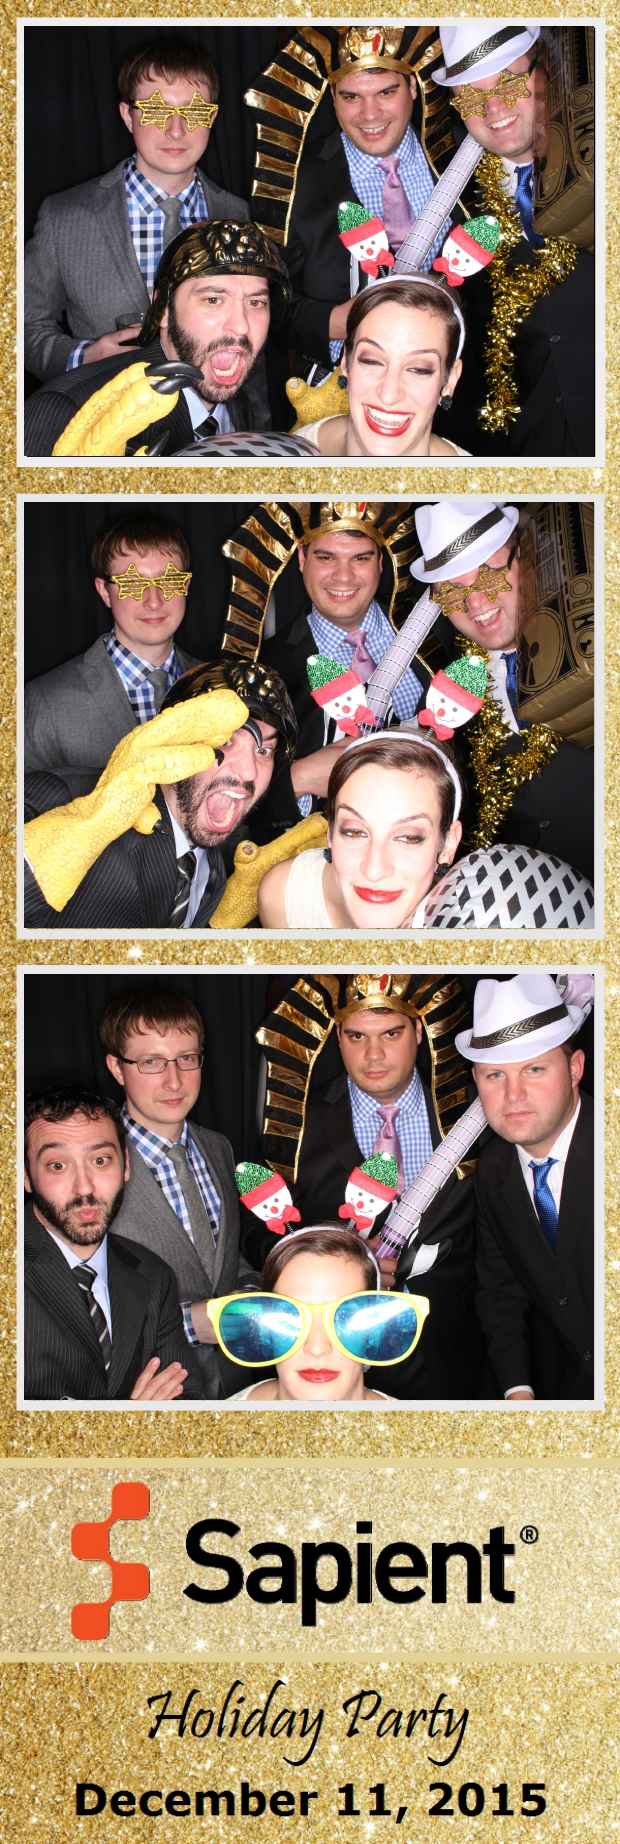 Guest House Events Photo Booth Sapient Holiday Party (81).jpg